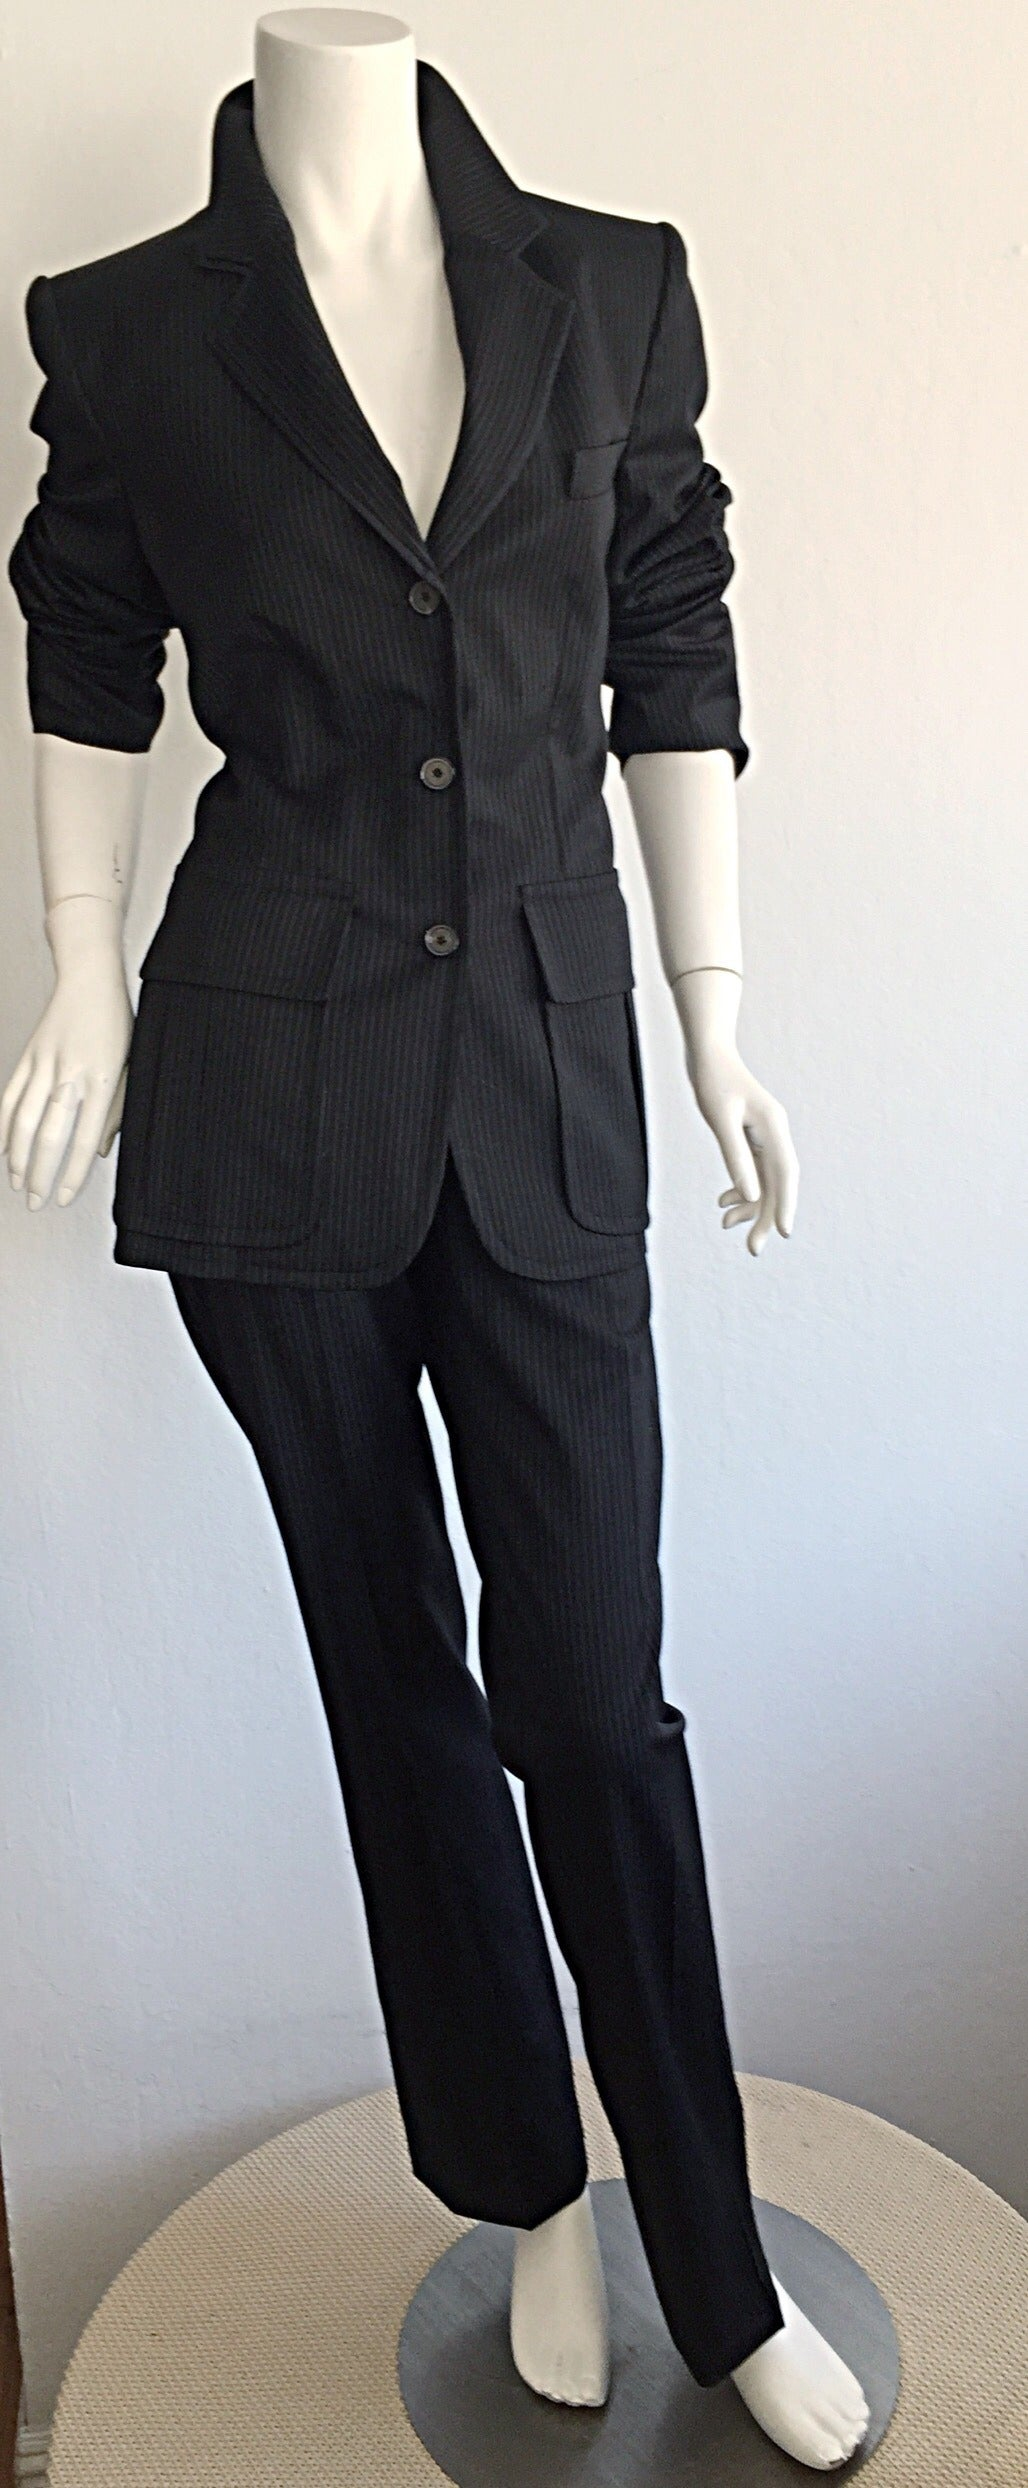 Tom Ford for Yves Saint Laurent Black + White Pinstripe Le Smoking Trouser Suit For Sale 4